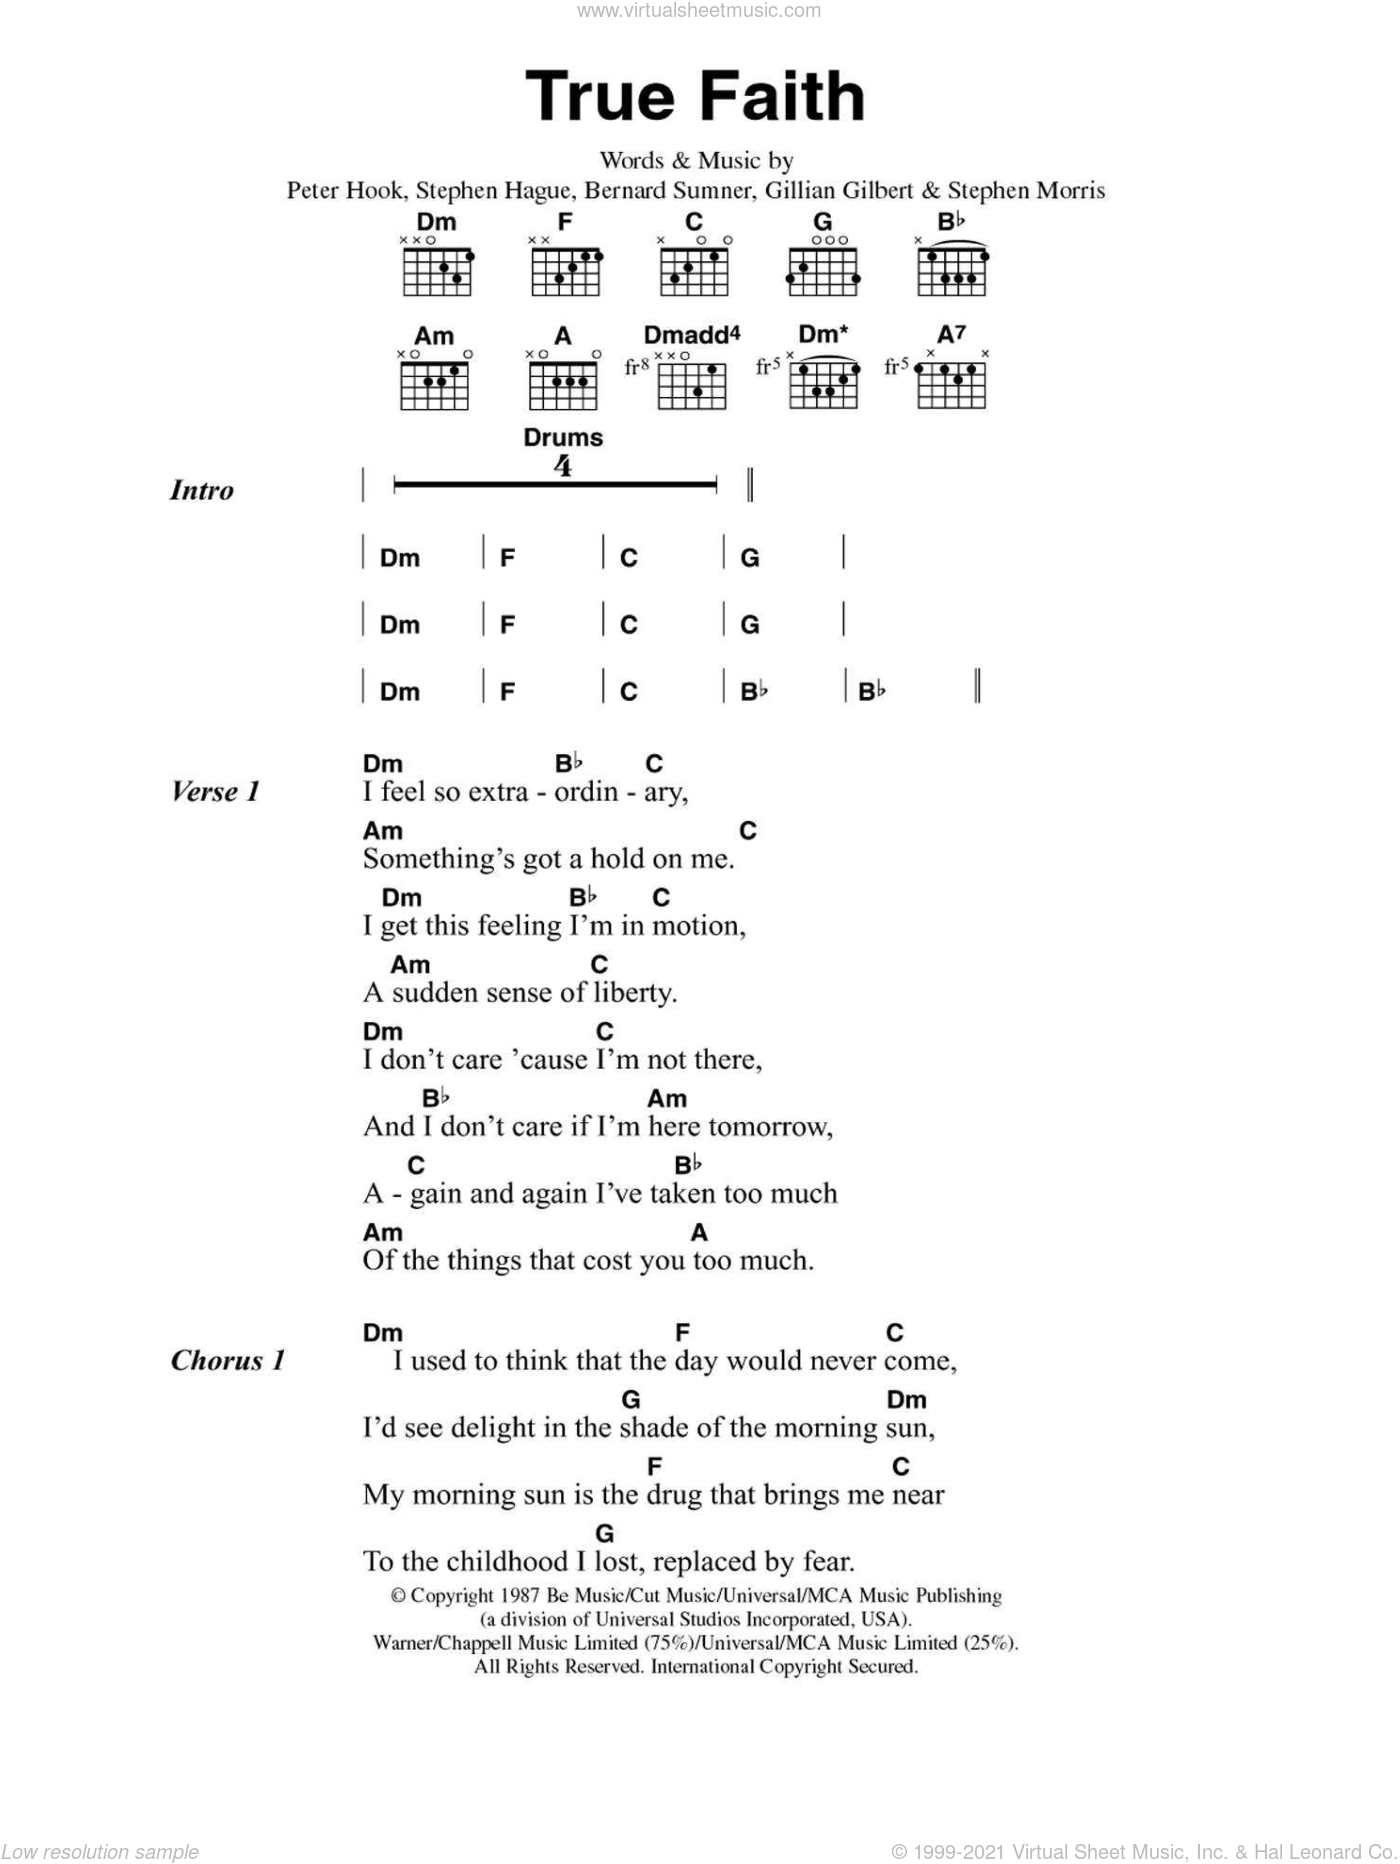 Order - True Faith sheet music for guitar (chords) [PDF]